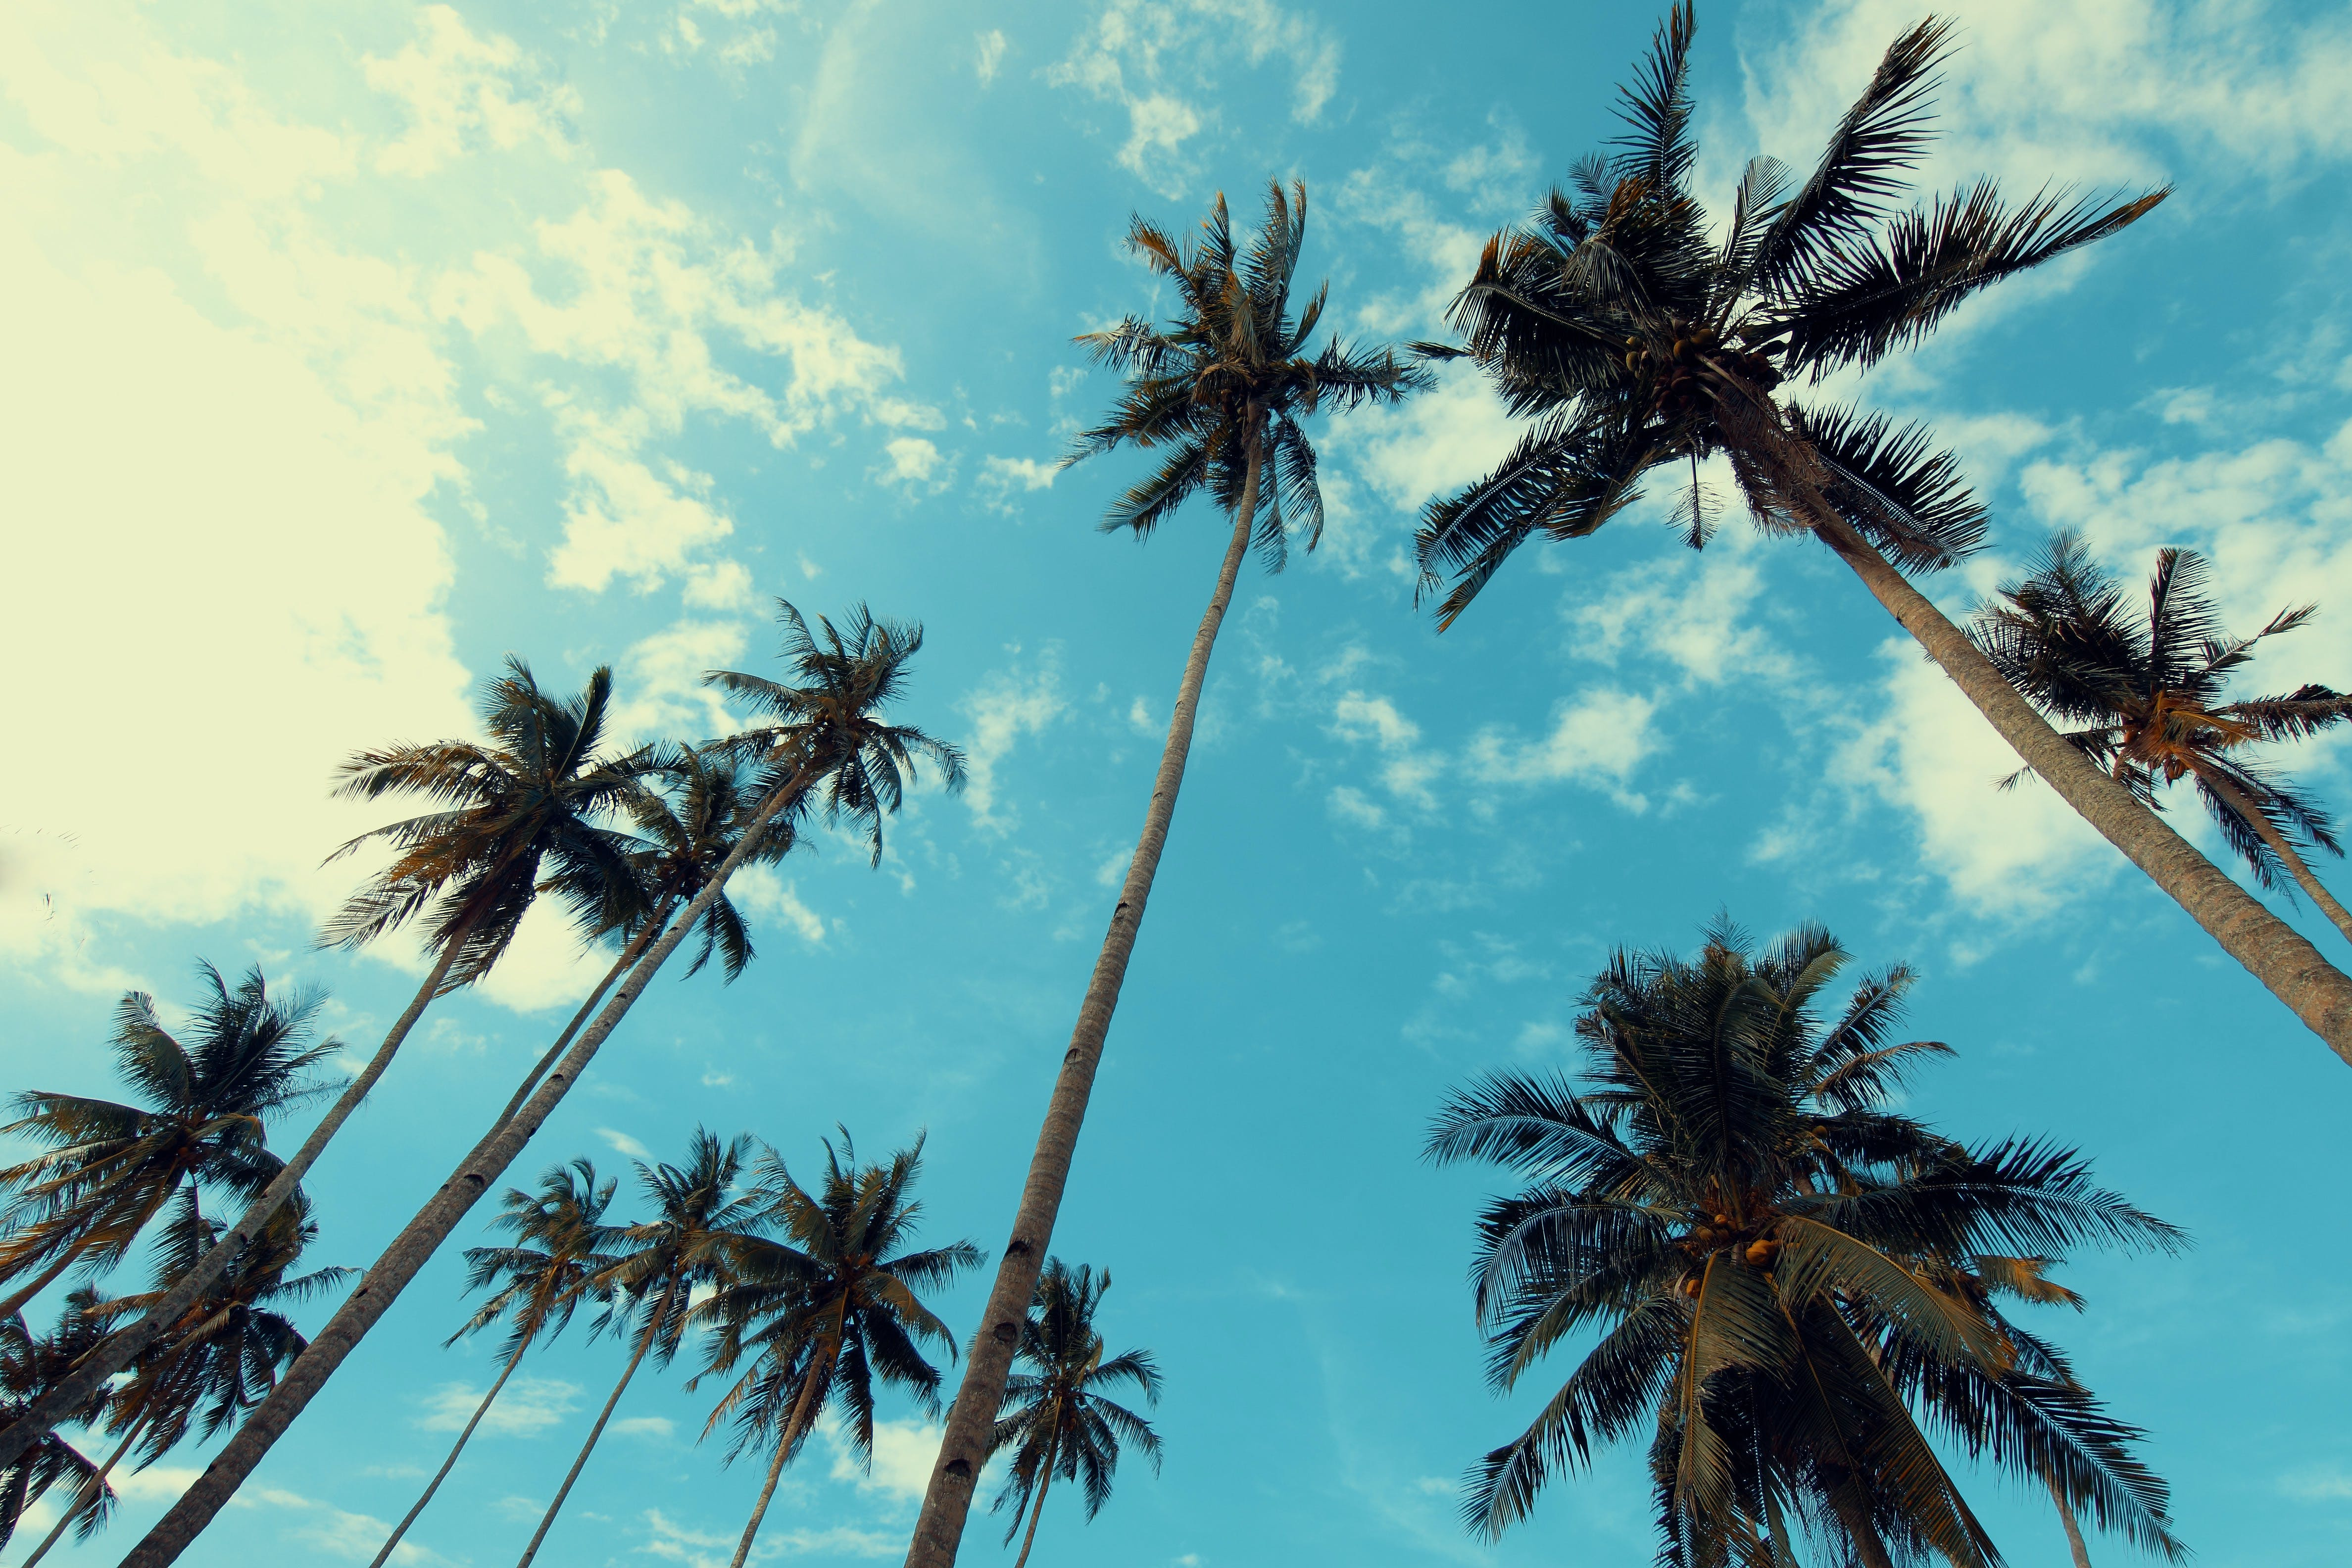 Palm Trees Under Blue Cloudy Sky